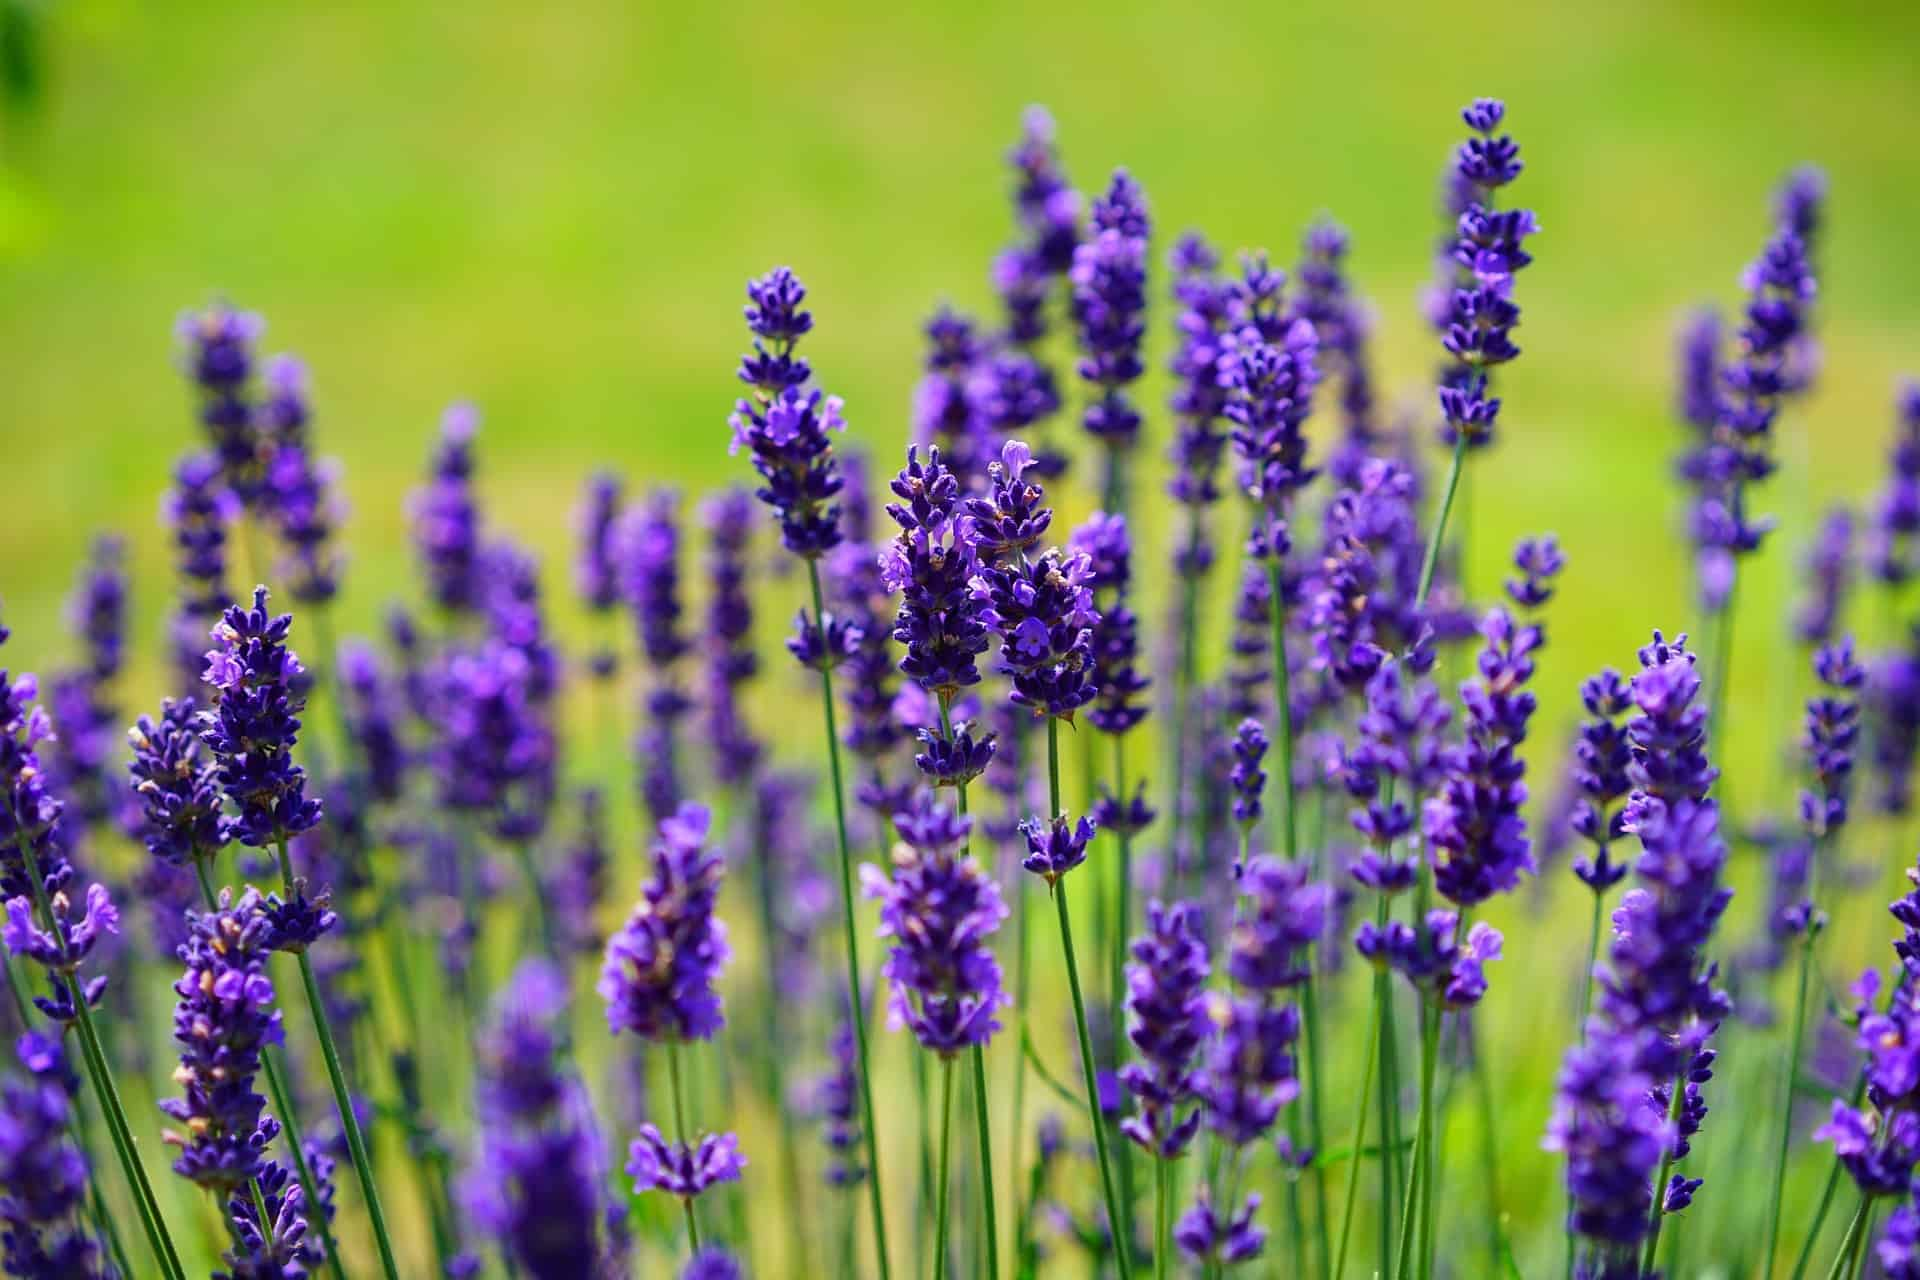 lavender herbs in a field